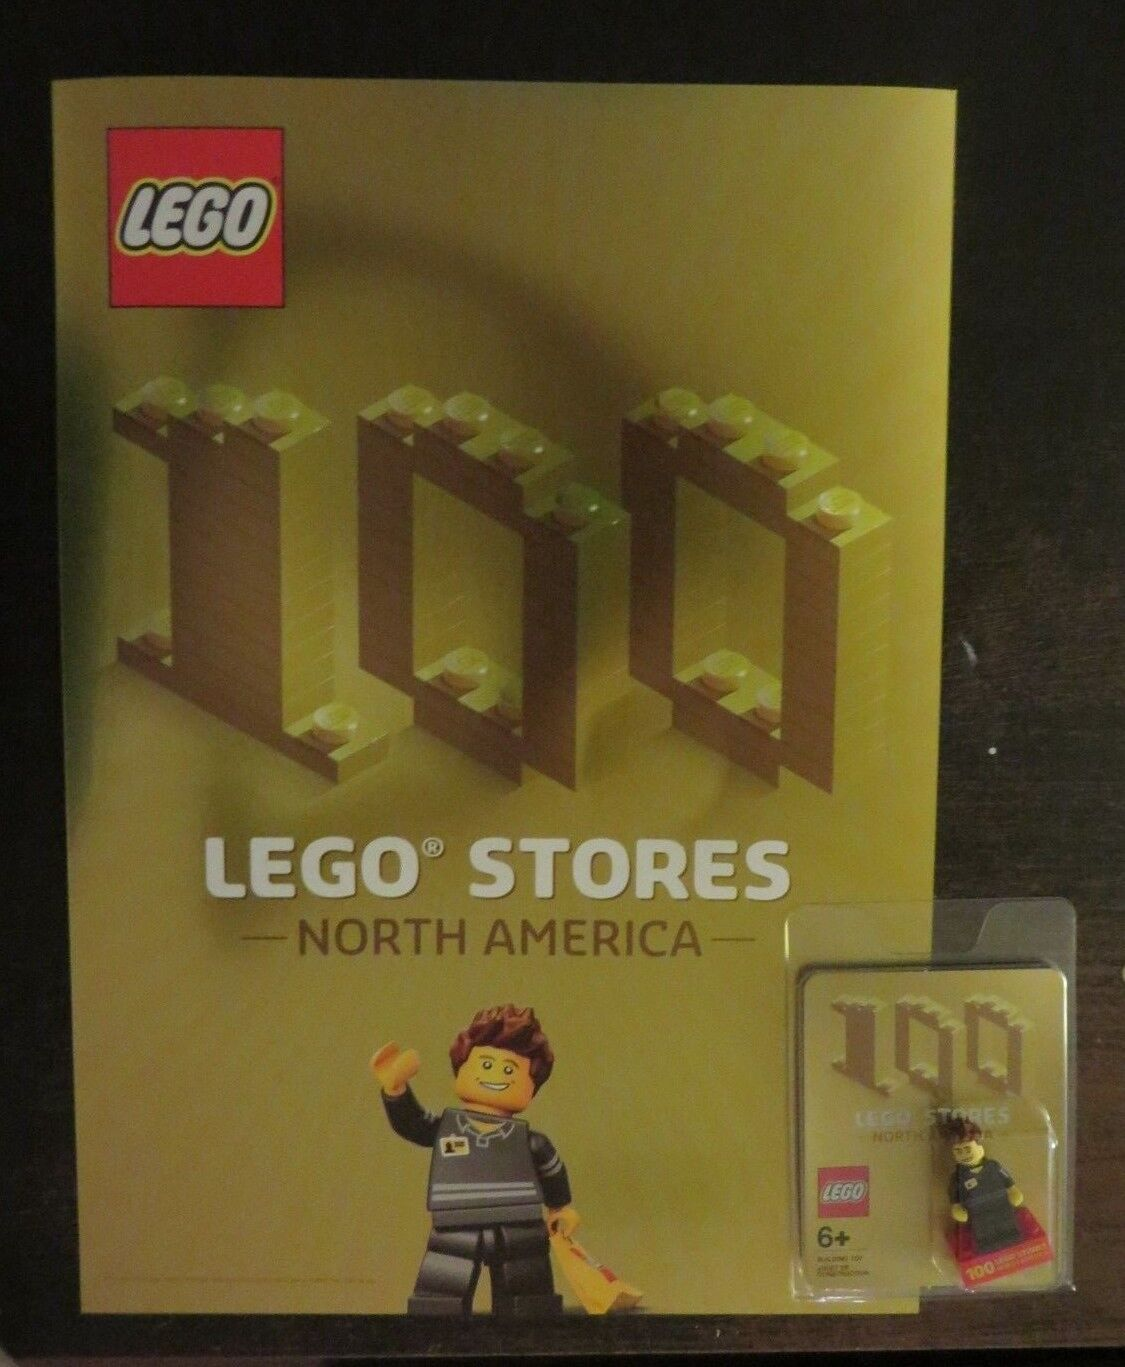 NEW - LEGO Exclusive Minifigure 100 LEGO Stores - North America + Poster - Mint